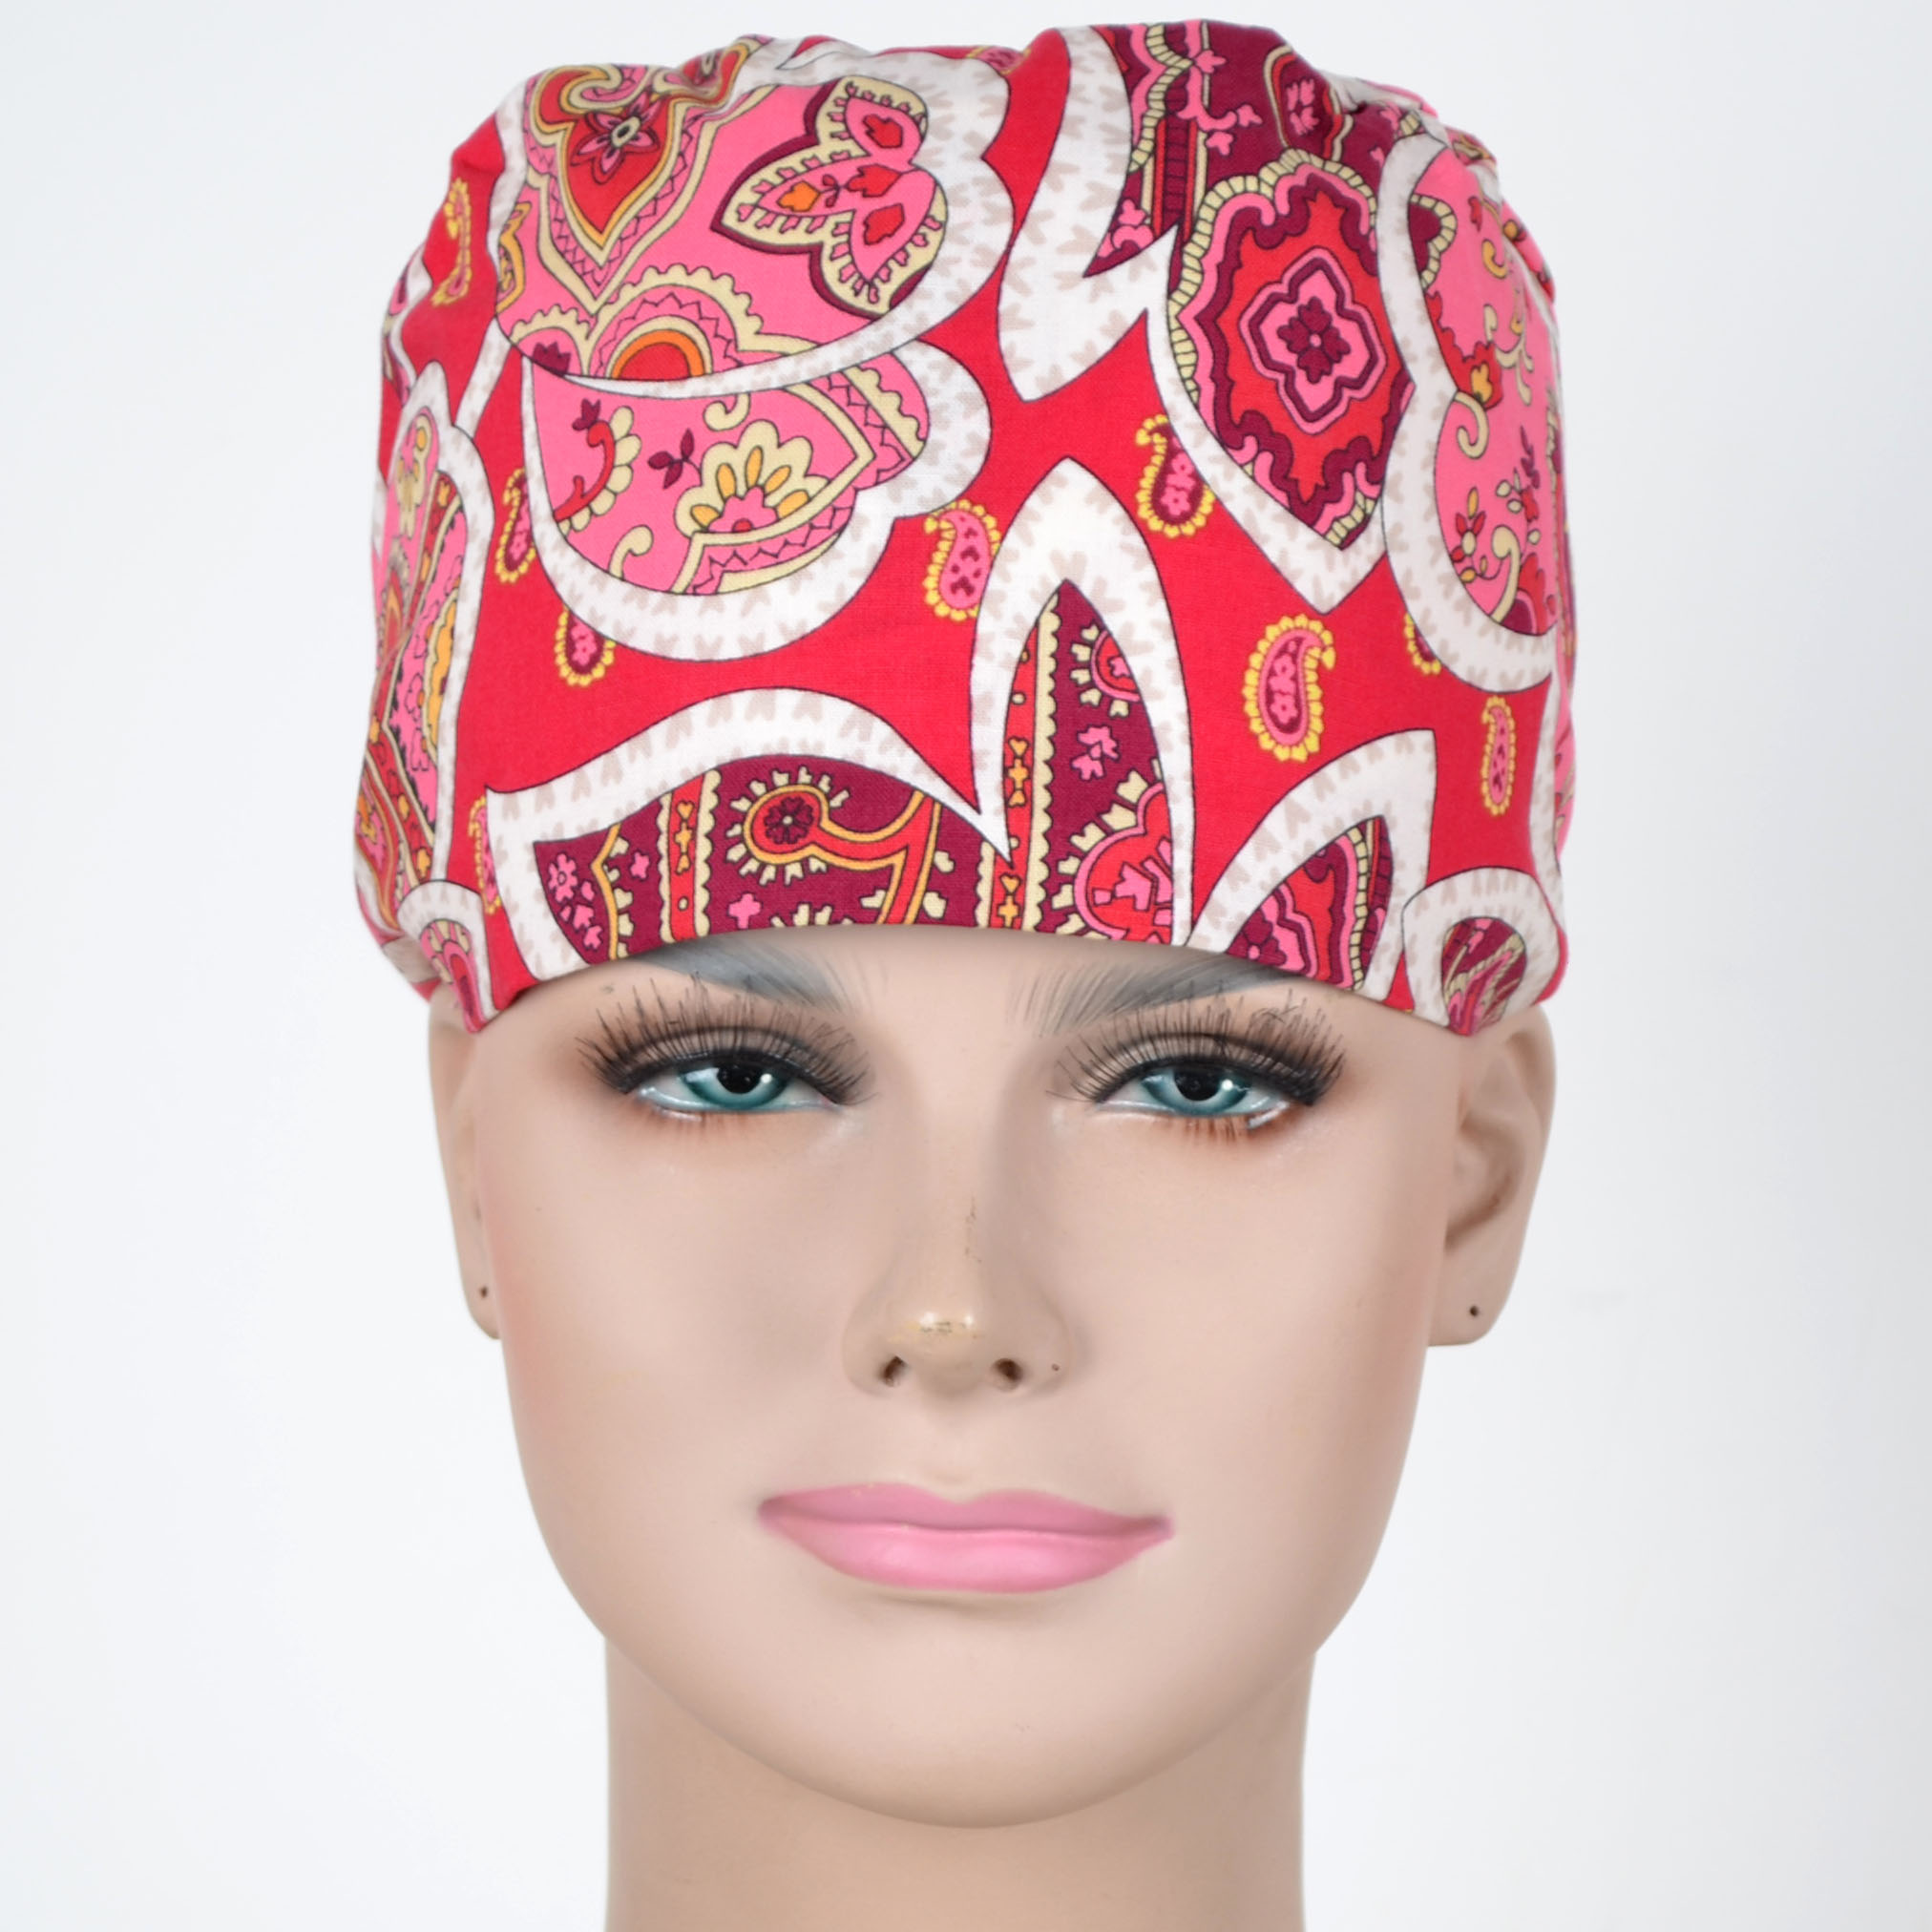 Medical Scrub Caps 100% Cotton  In Red With Floral Prints Surgical Caps With 3 Sizes For Choice